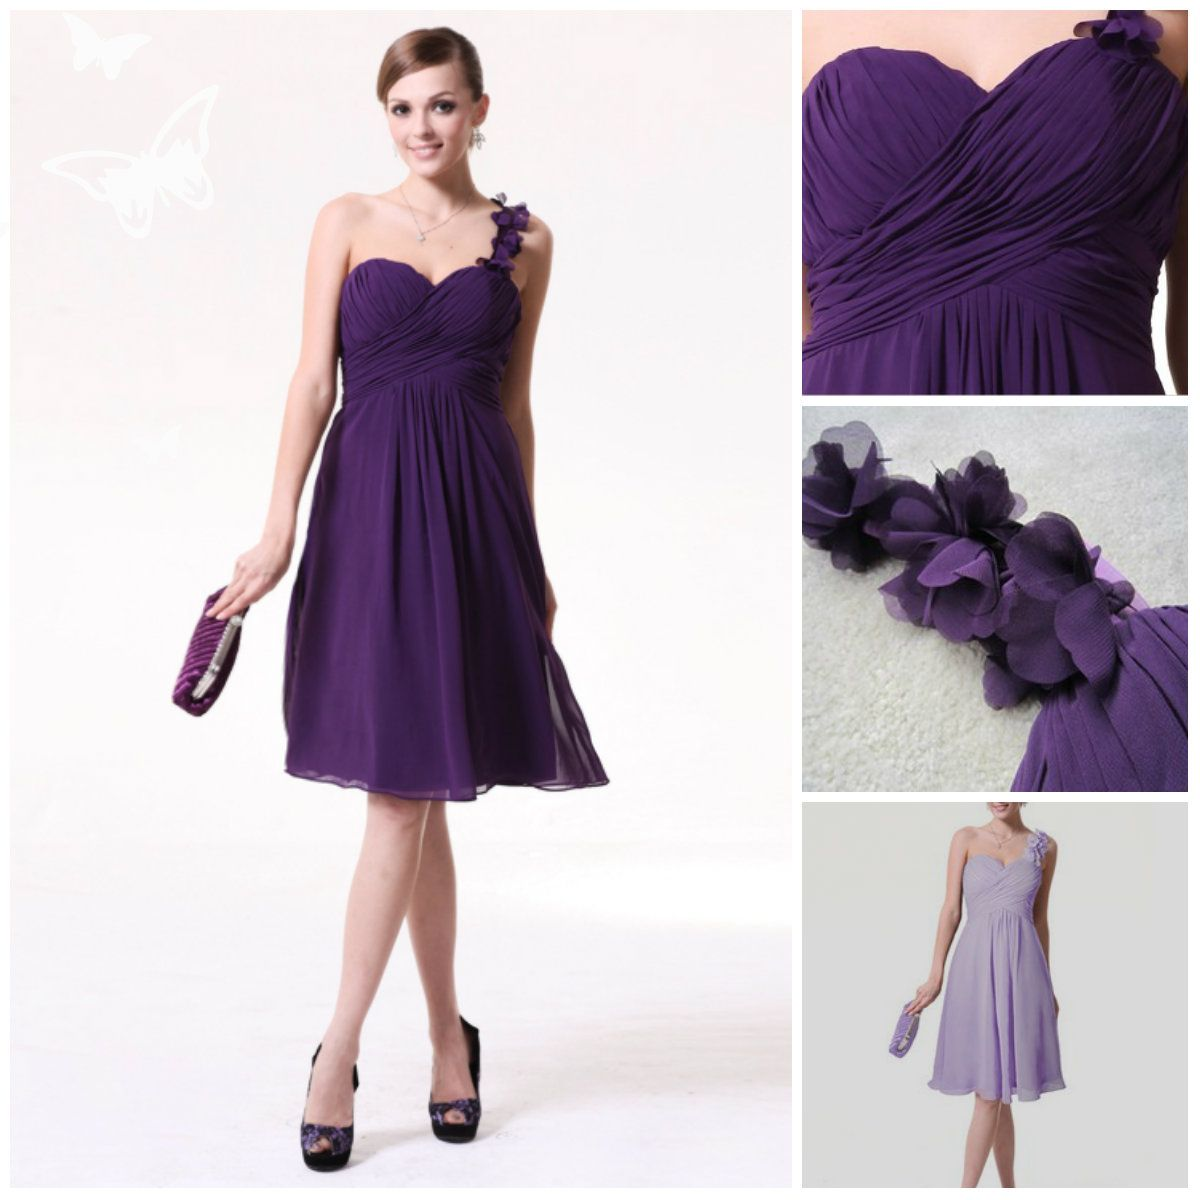 a130ce43d Jcpenney Clearance Flower Girl Dresses. Purple Bridesmaid Dresses Short  Fashjourneycom Wedding